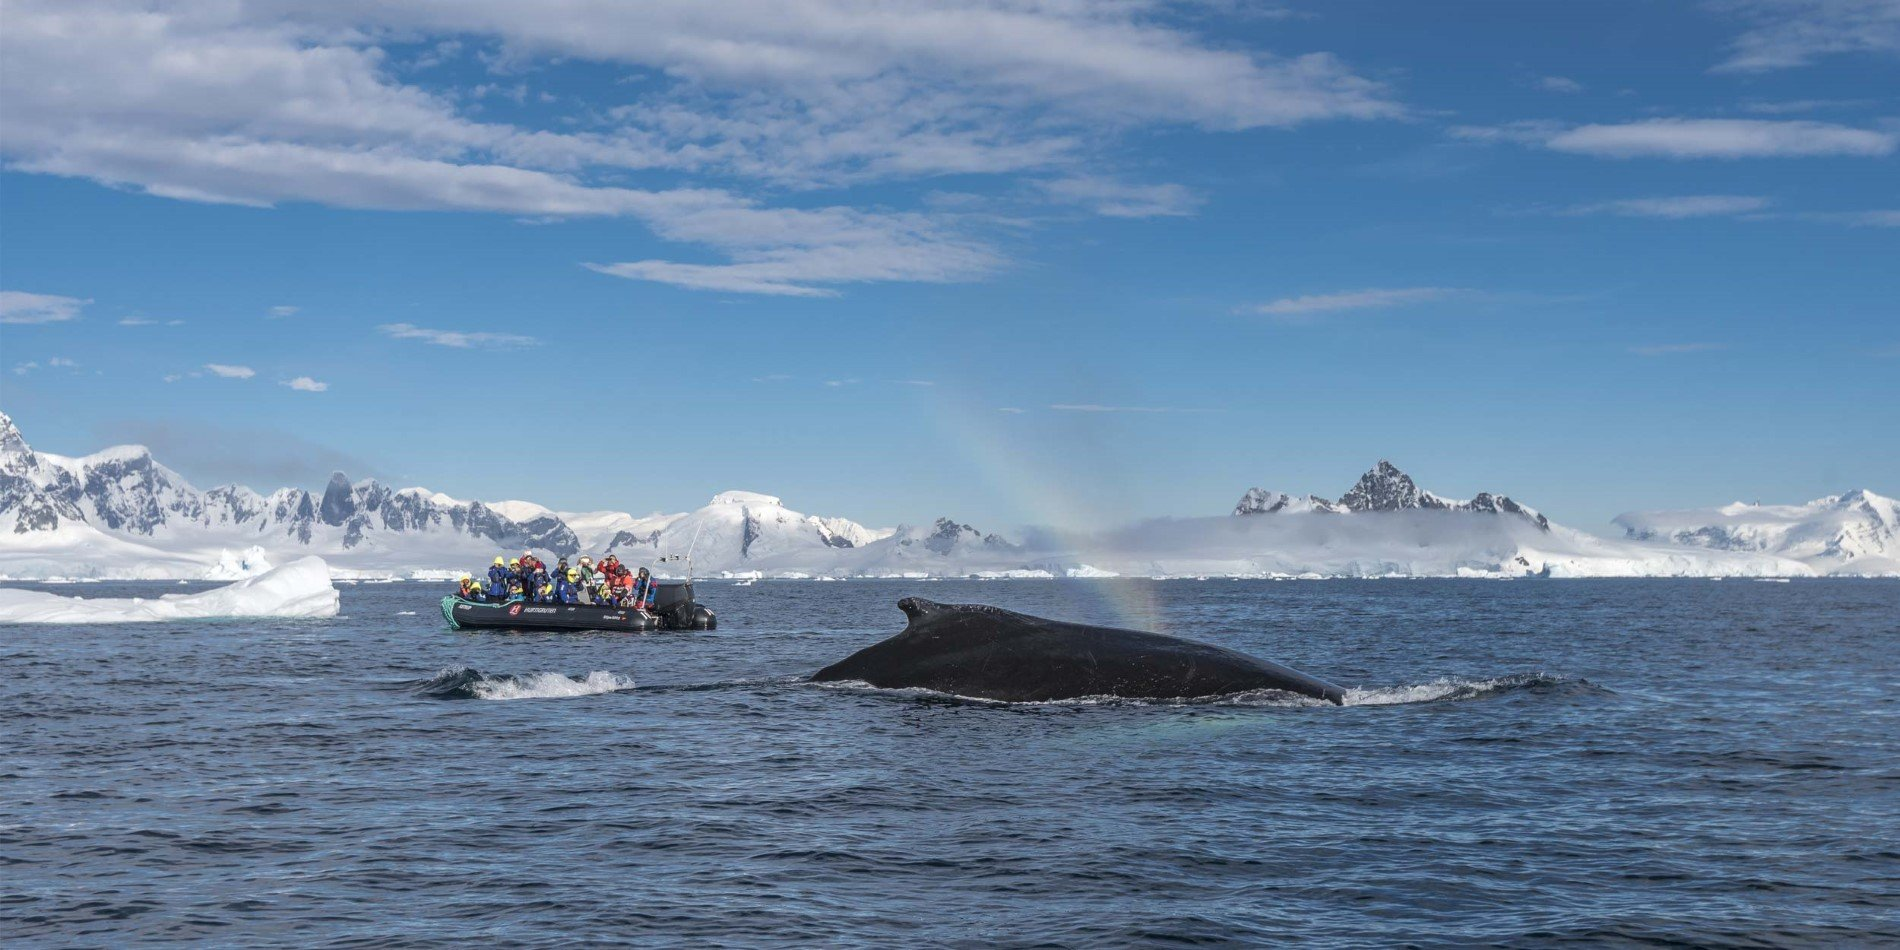 Humpback whales giving us a show in Wilhelmina Bay, Antarctica